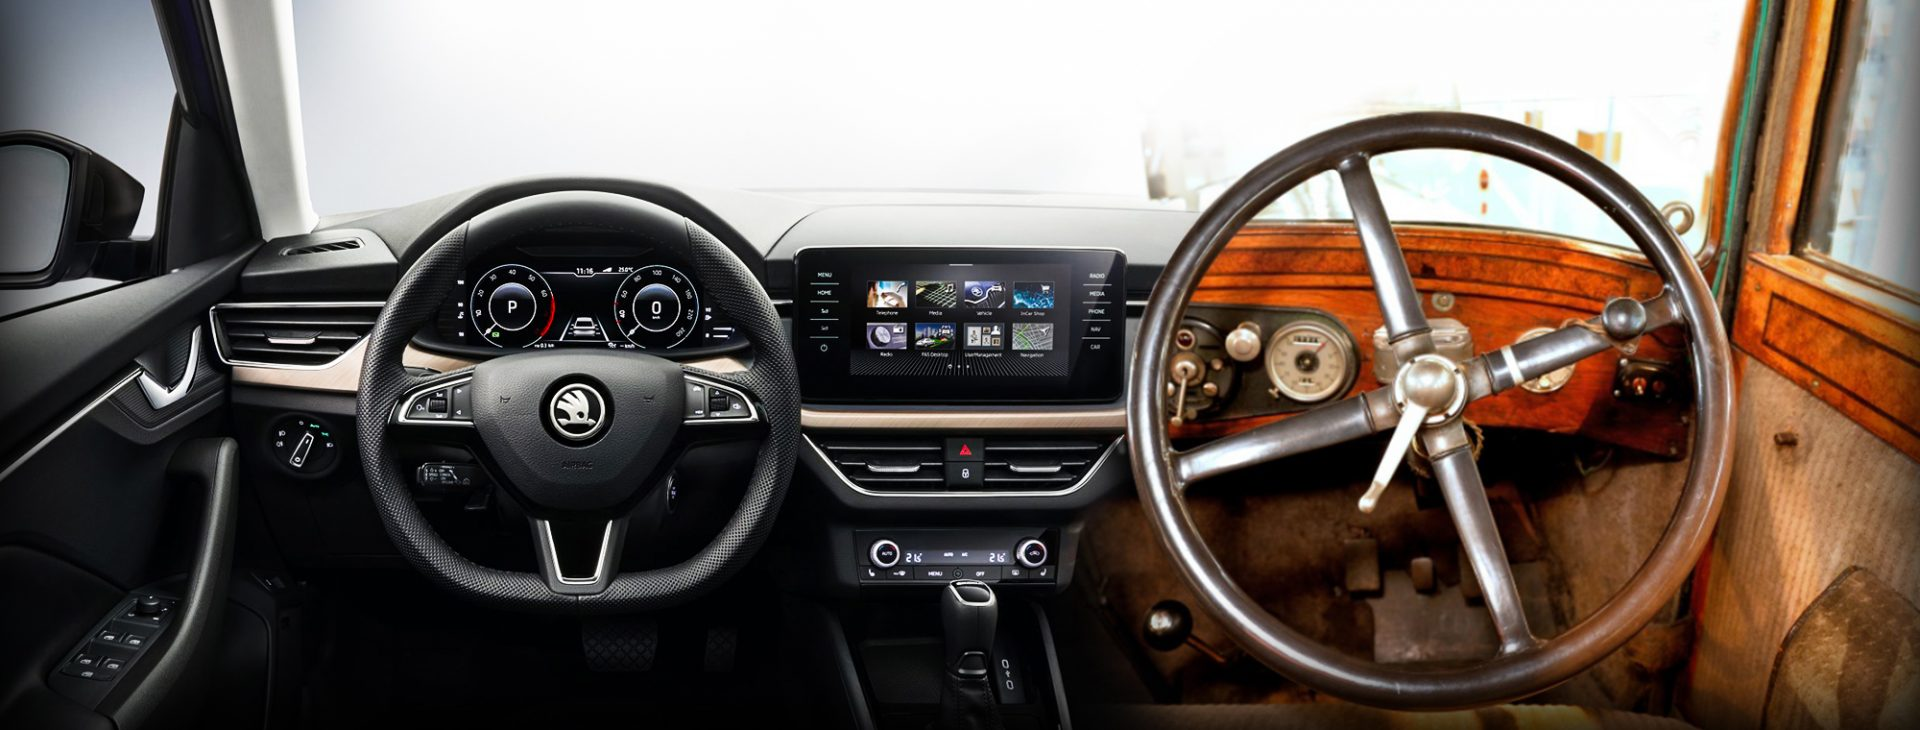 Steering Wheel On The Right No On The Left But Why Skoda Storyboard